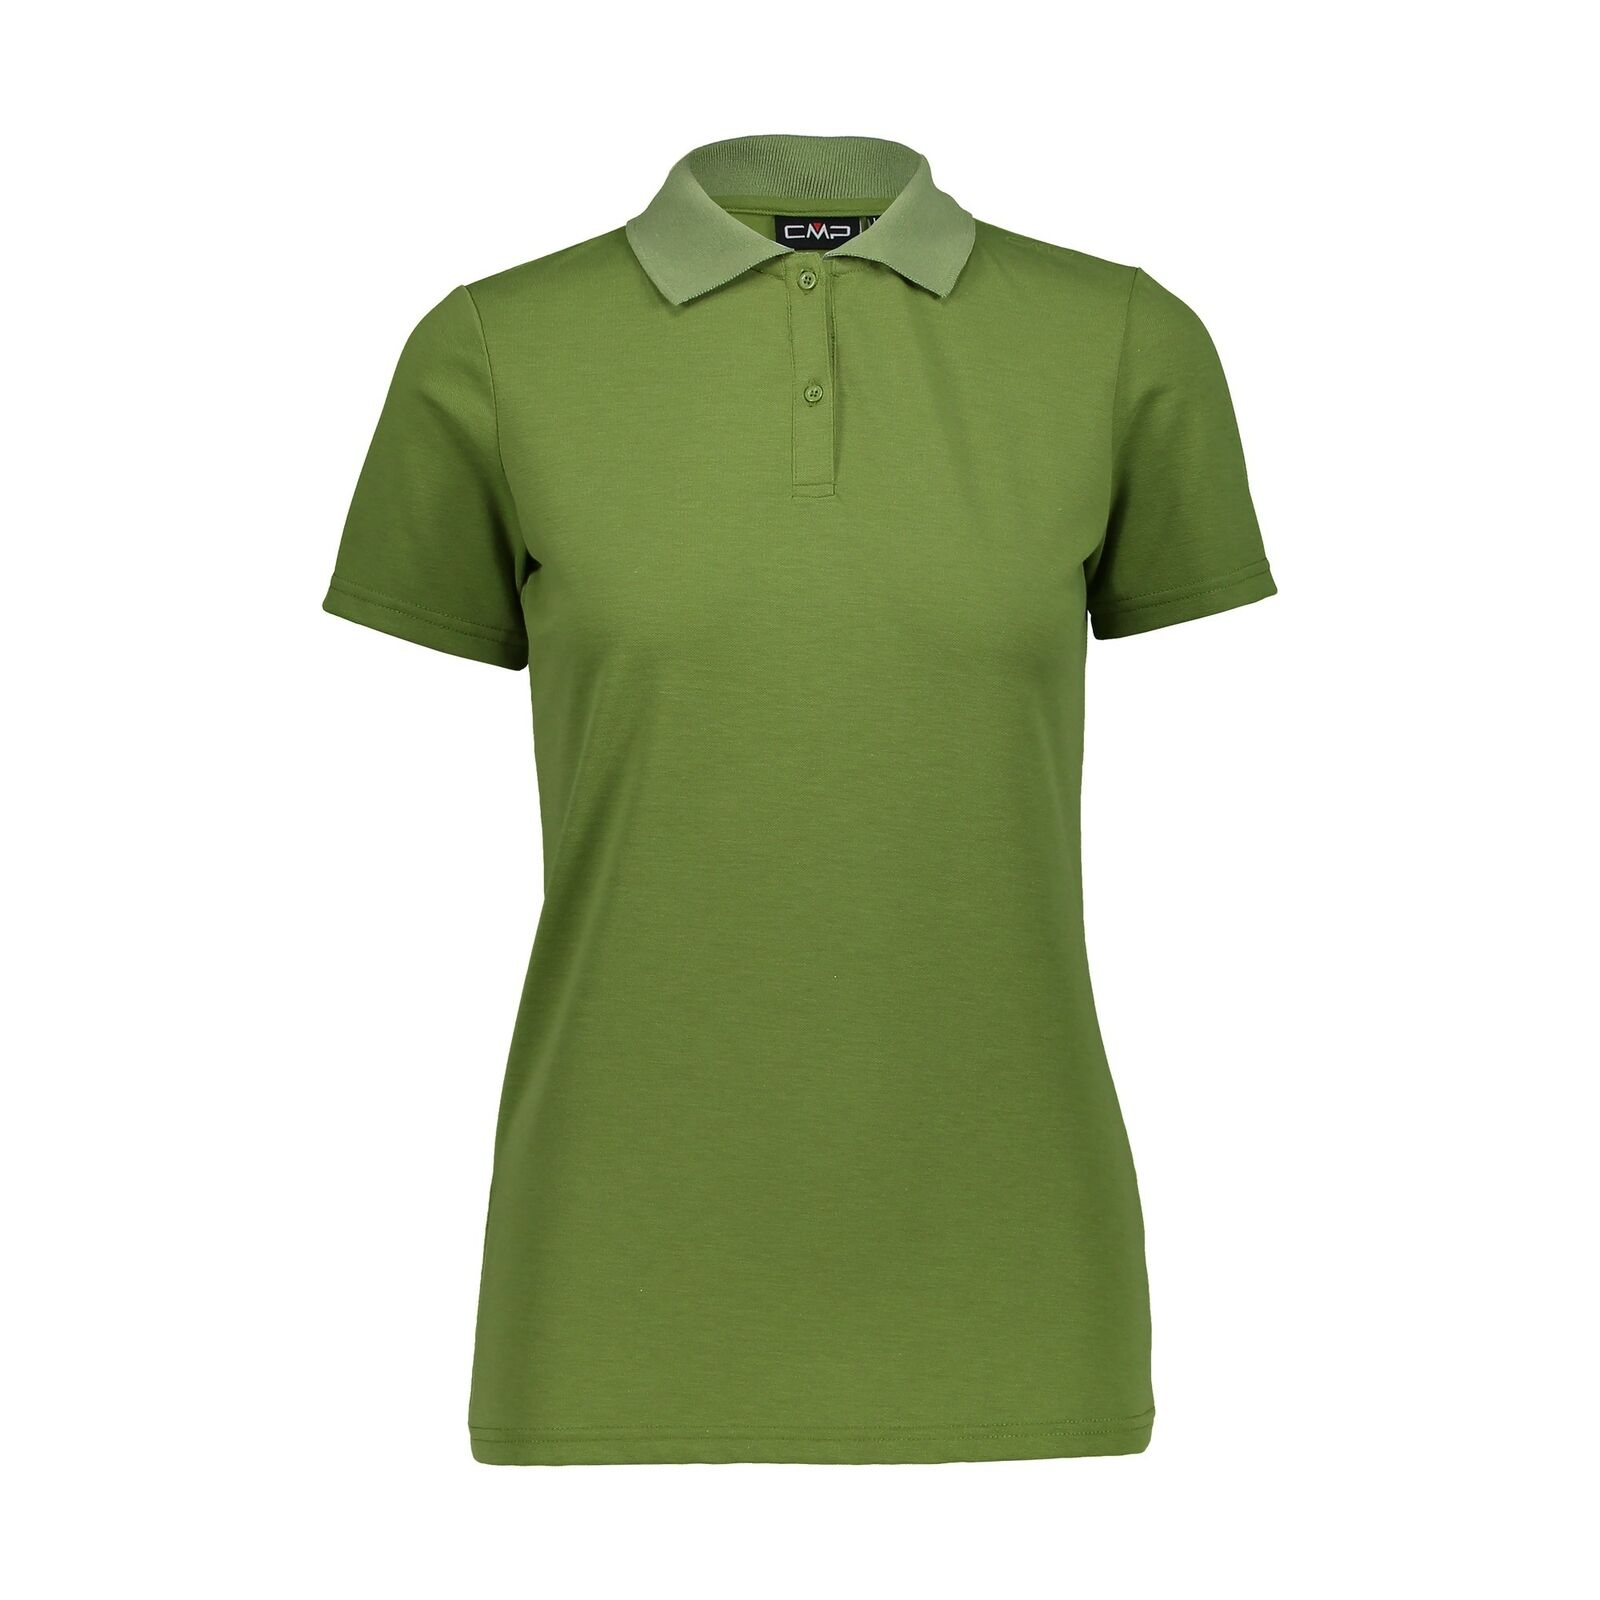 CMP woman polo shirt green polo Breathable Elastic Antibacterial   2018 latest